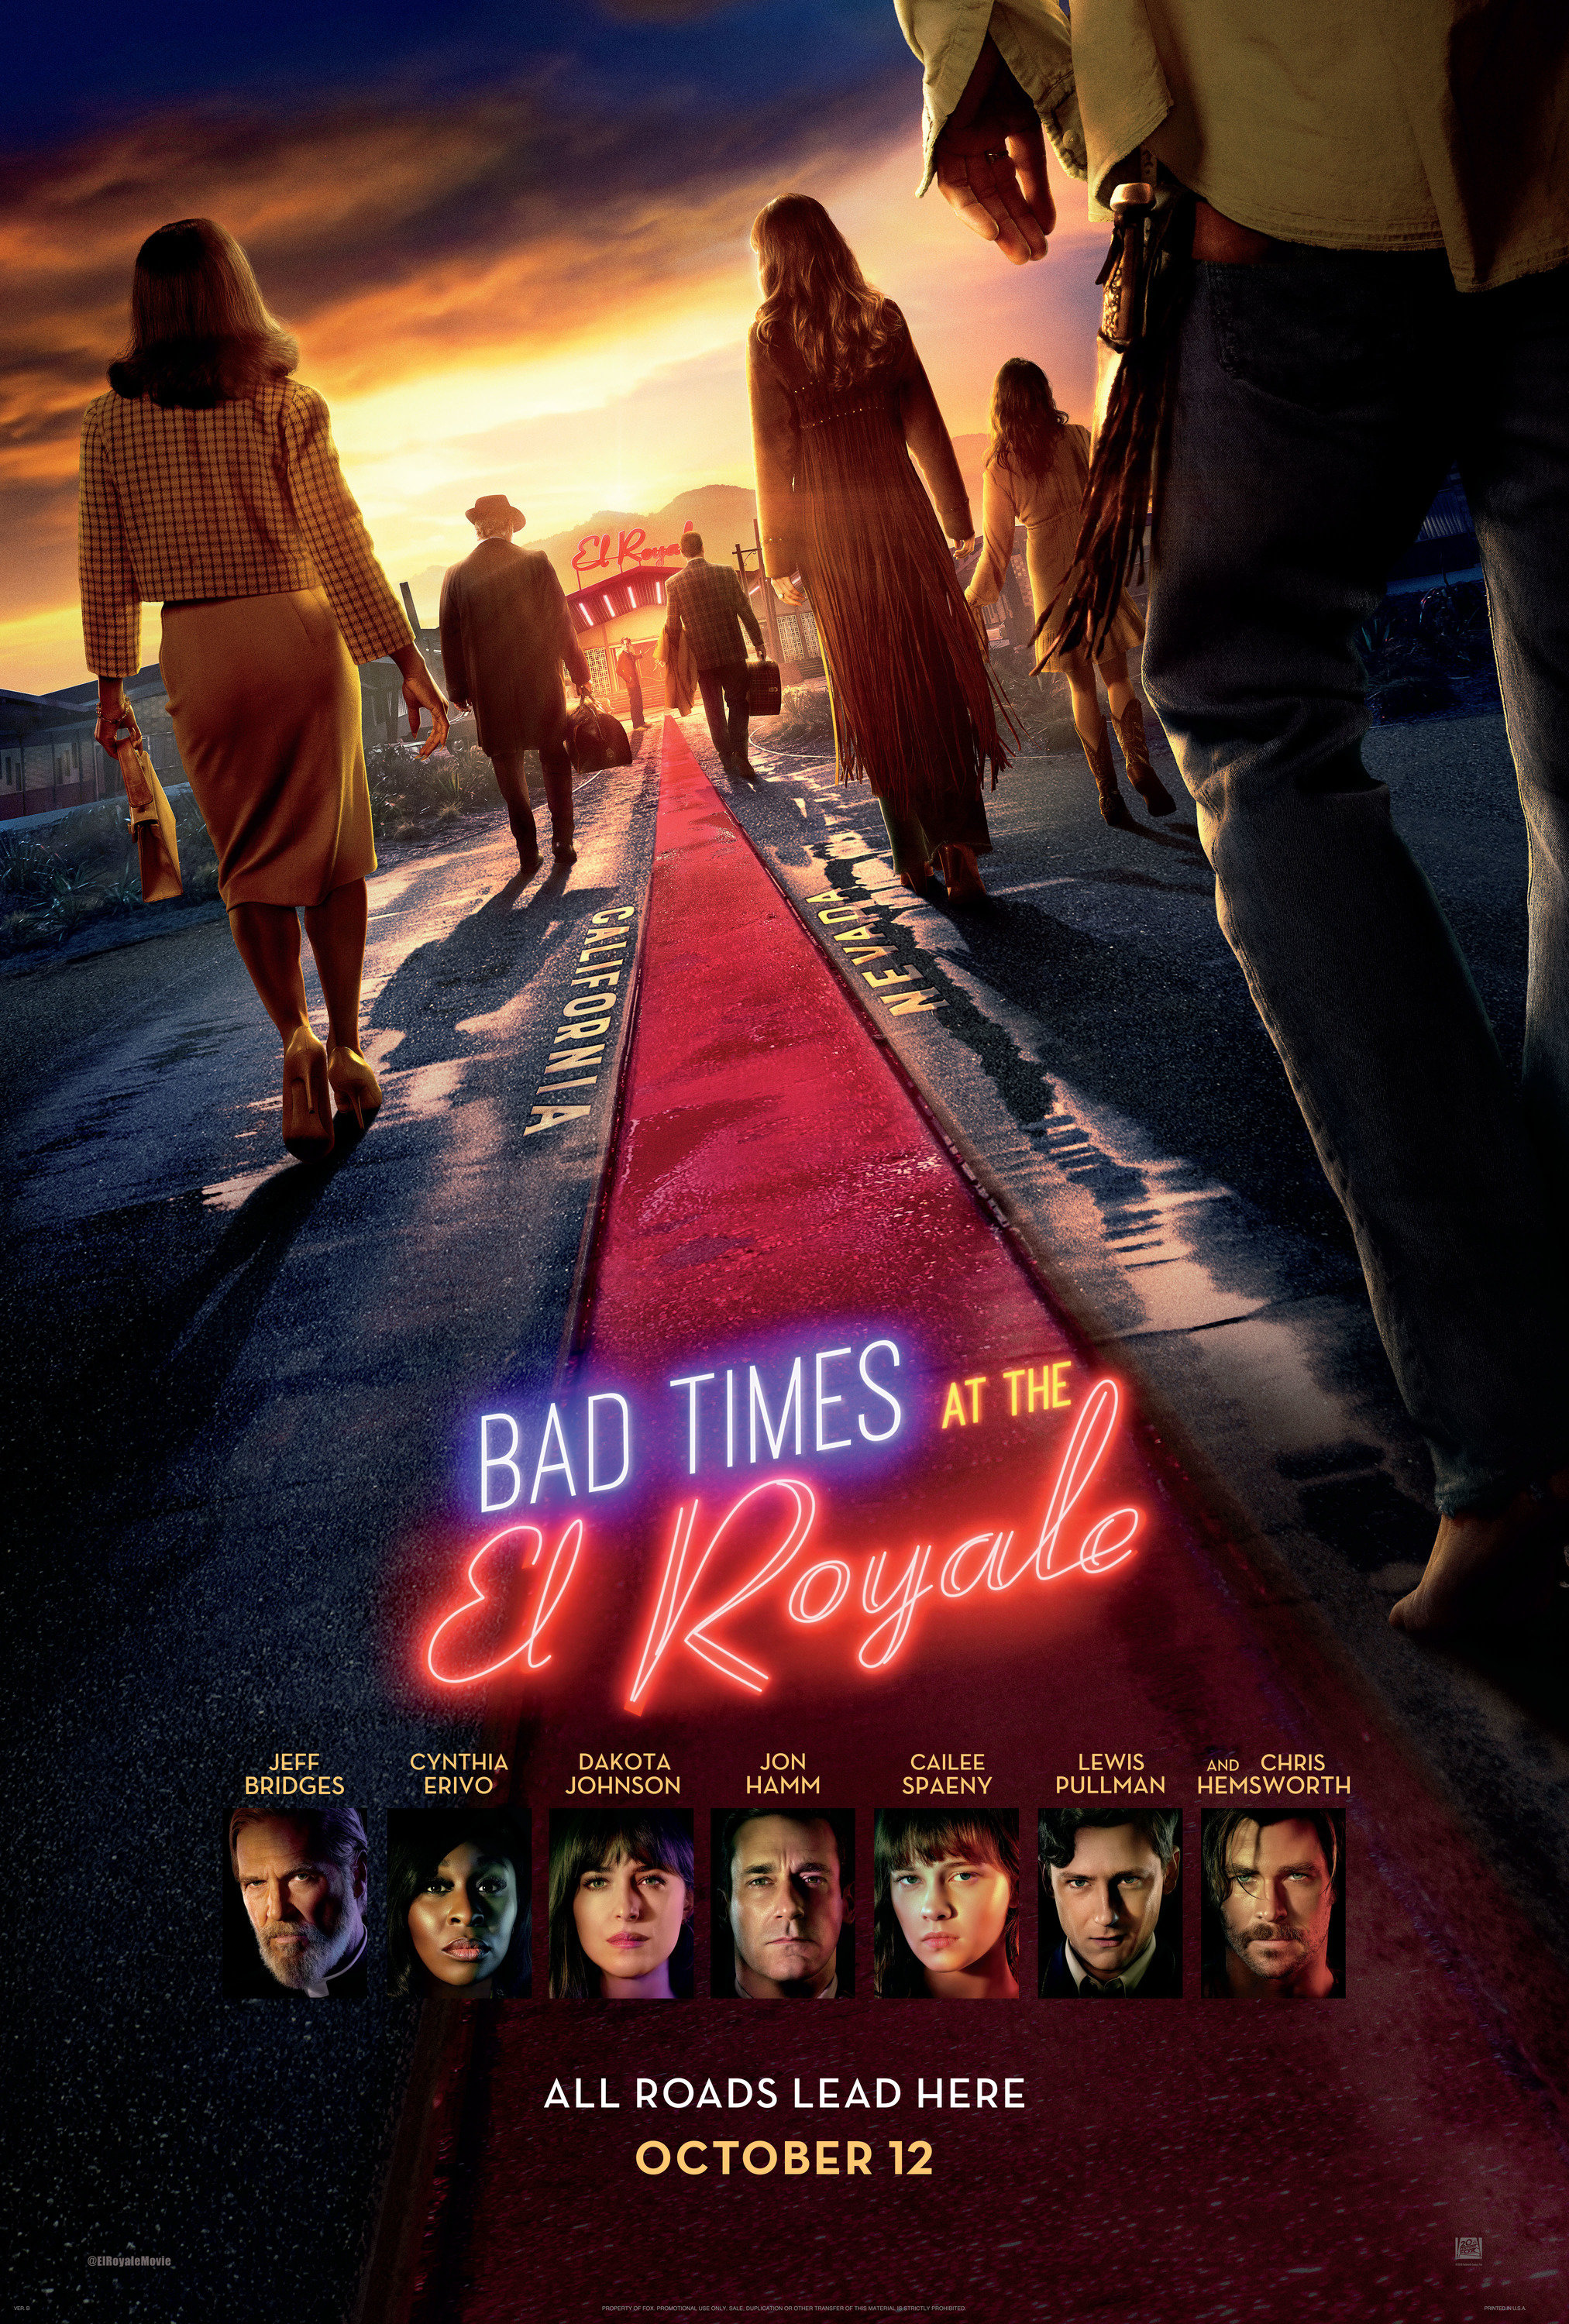 Sorties Ciné : Sale Temps A L'Hotel El Royale